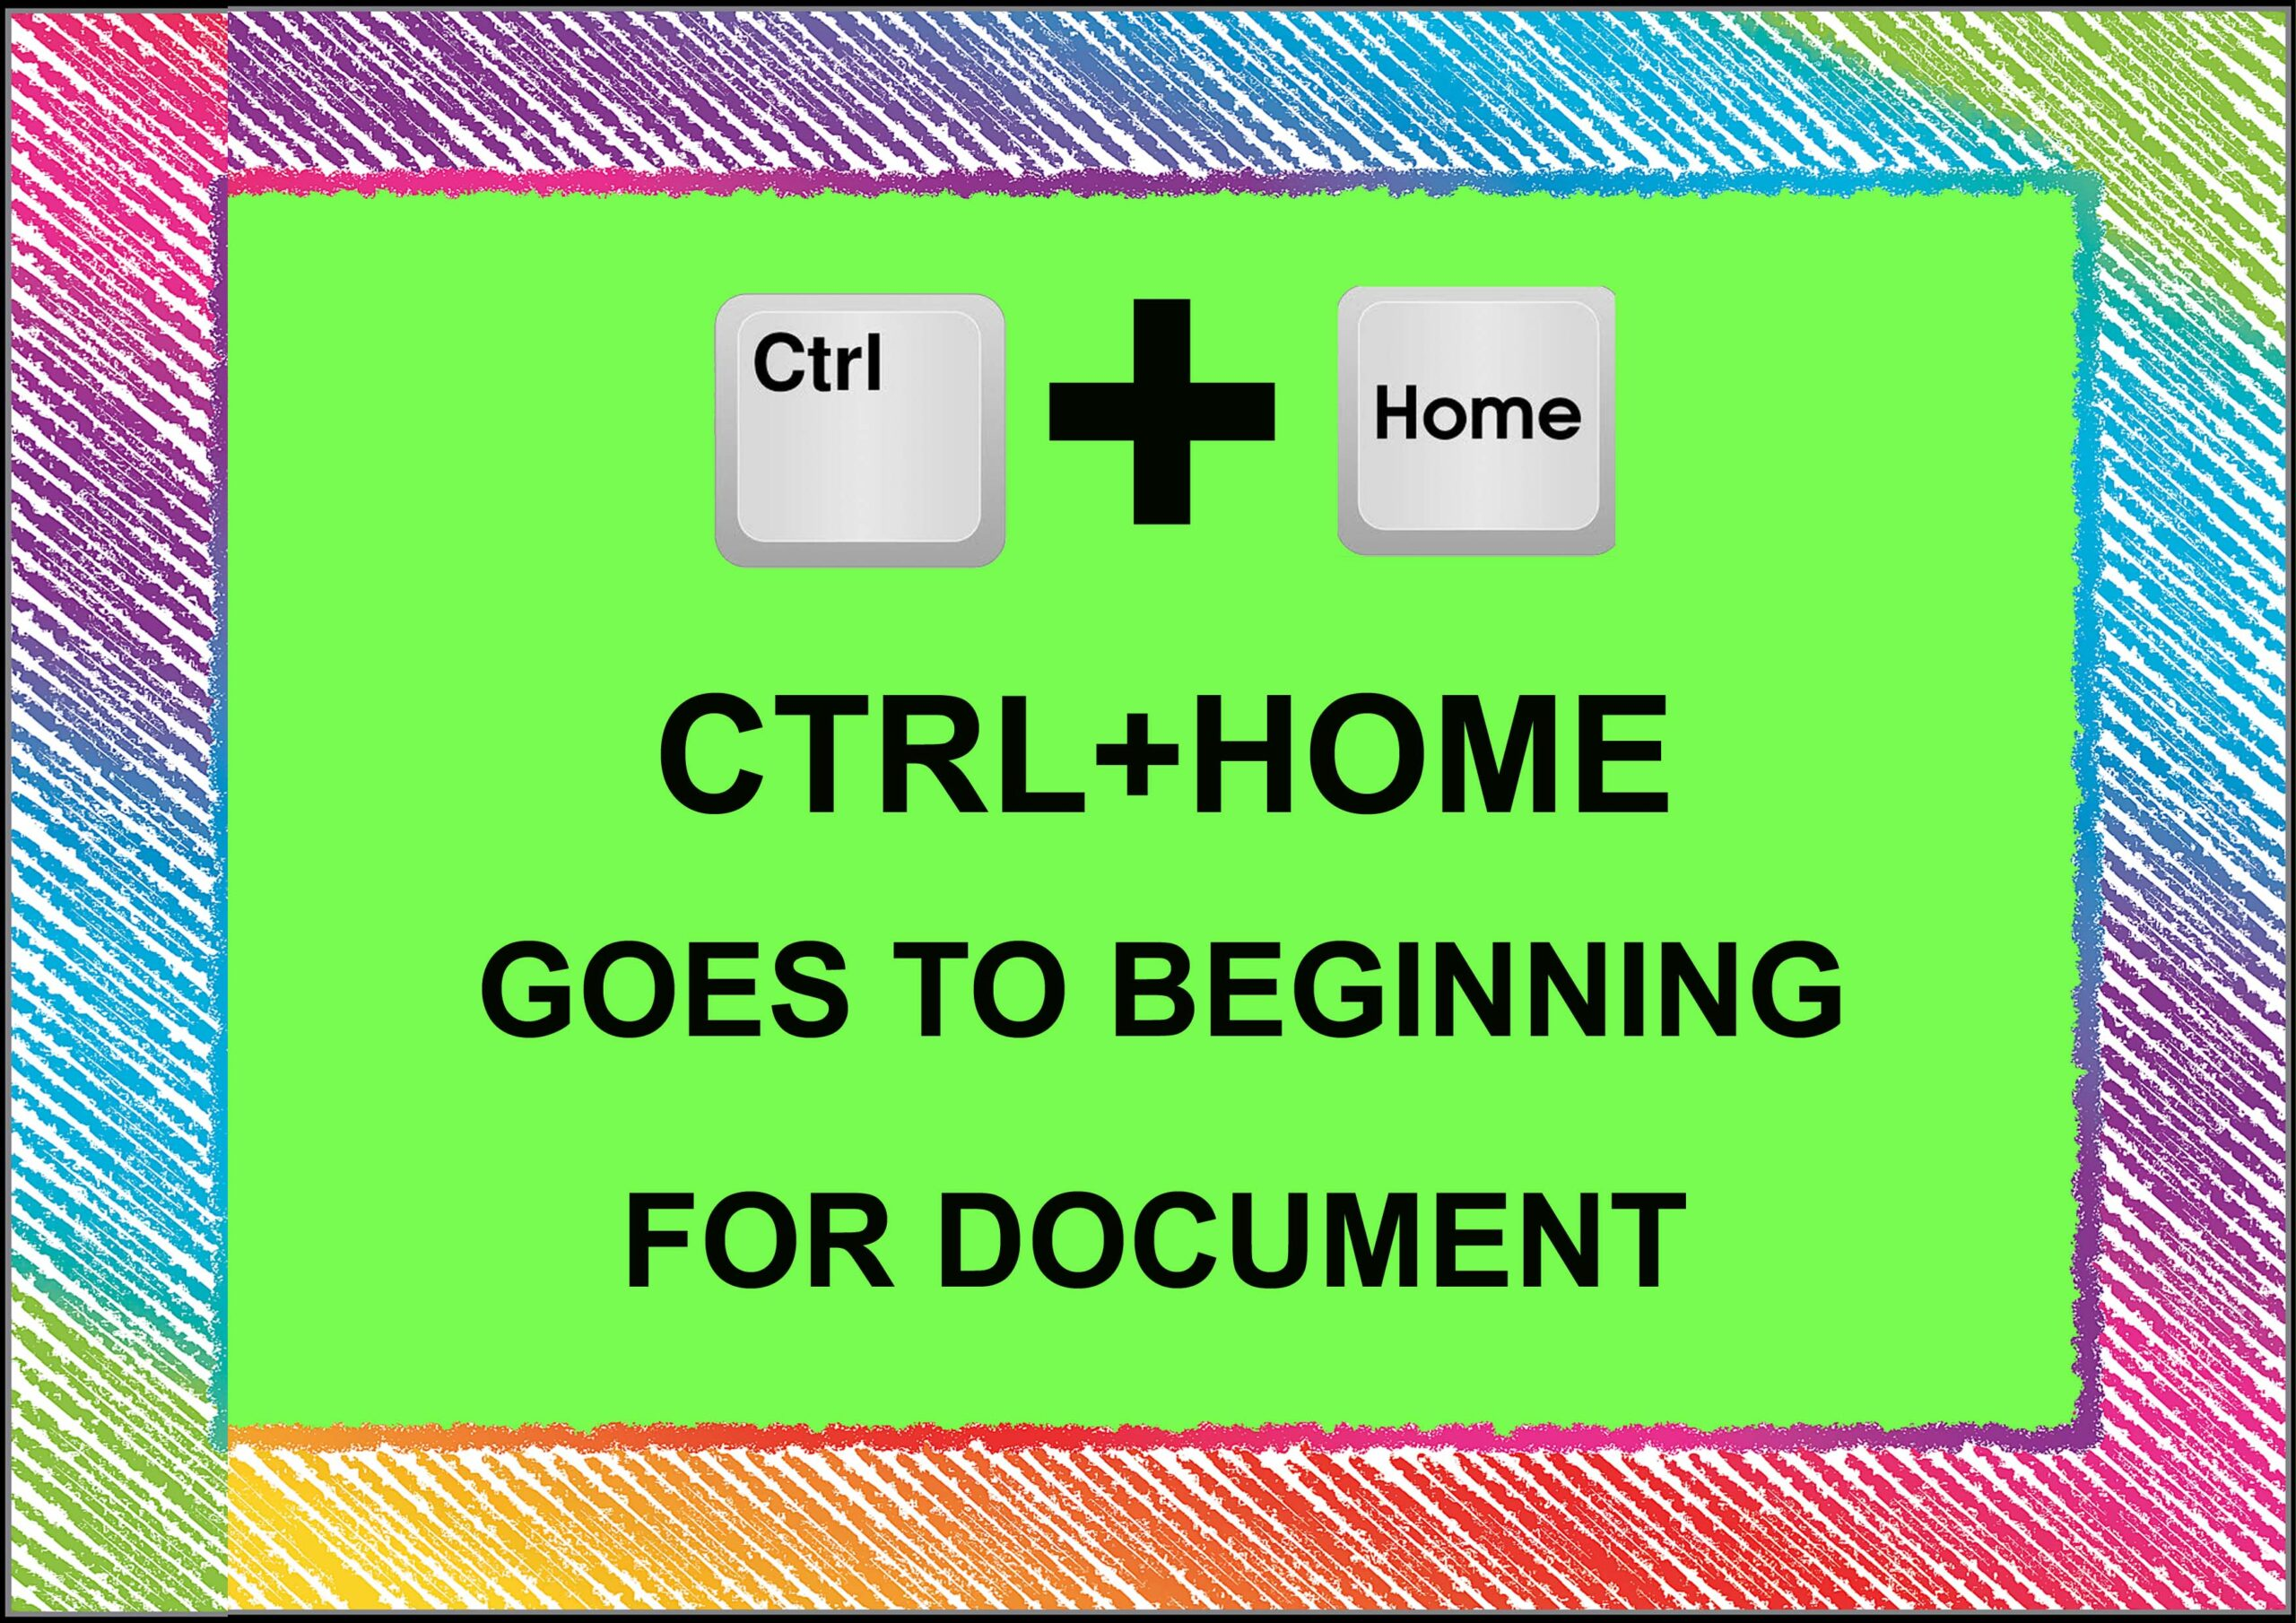 Ctrl+ Home = Goes To Beginning For Document